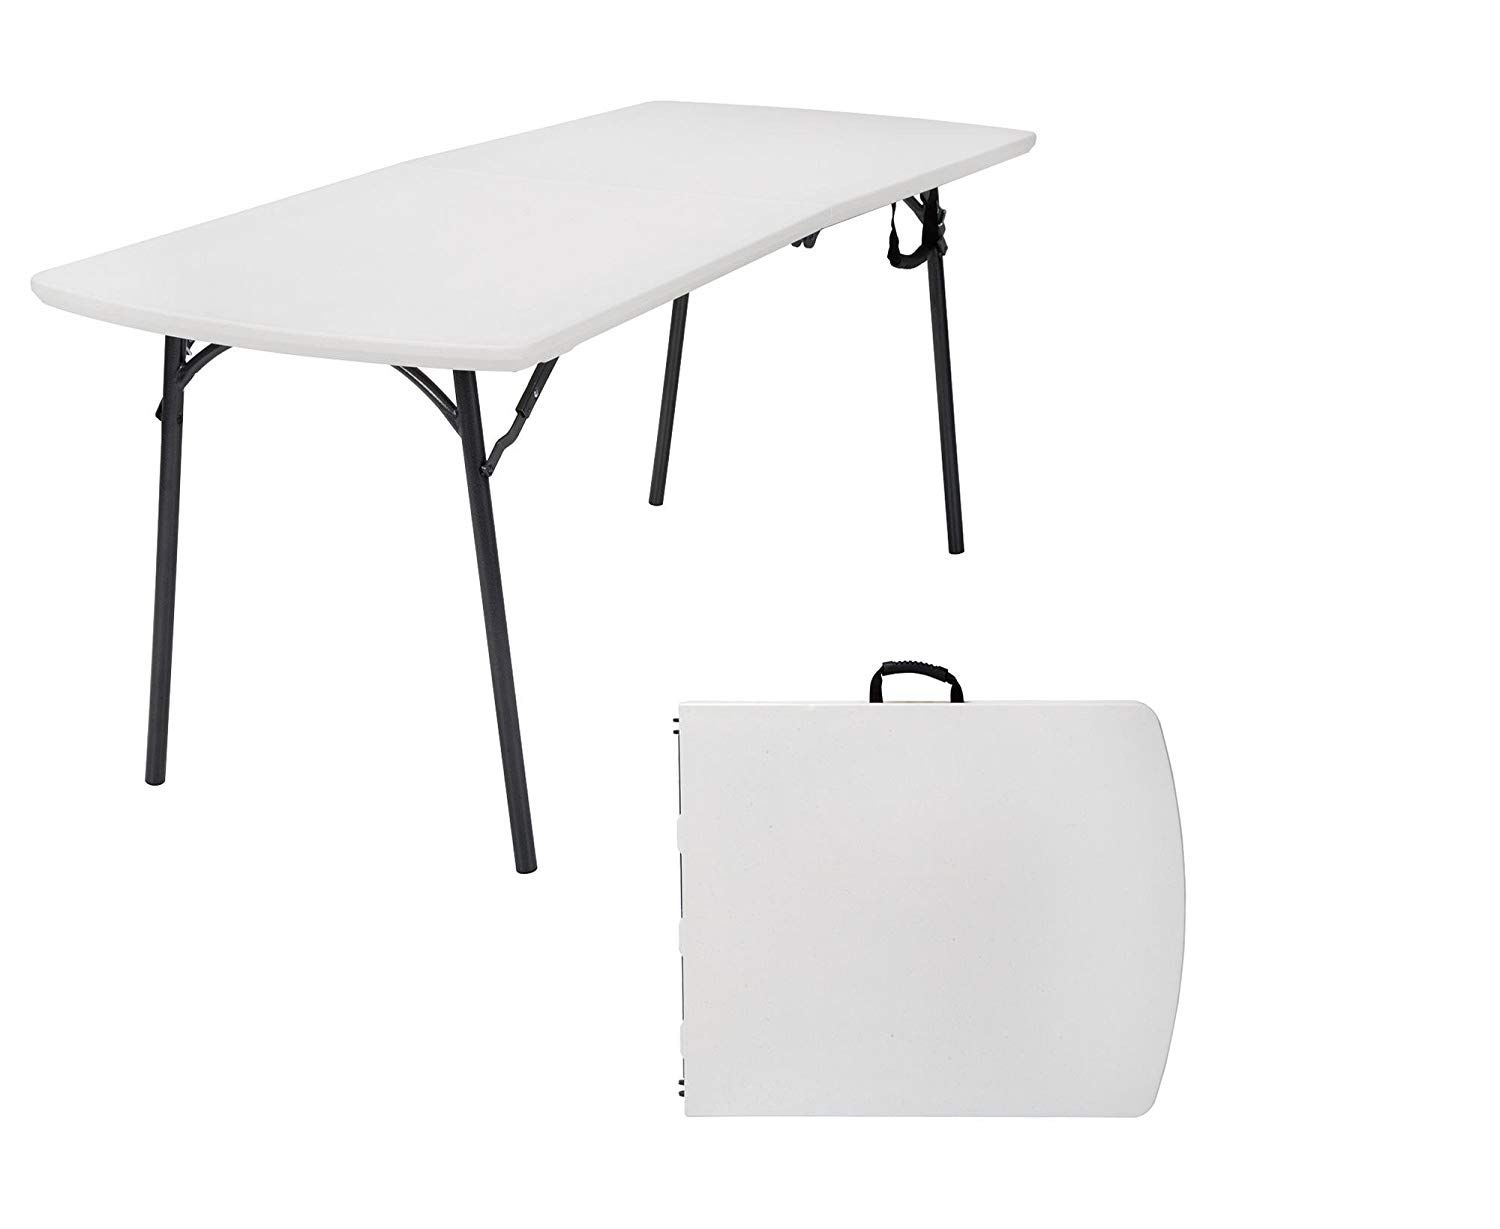 2//4//6FT Folding Table Picnic Camping BBQ Party Banquet Market Garden Portable UK